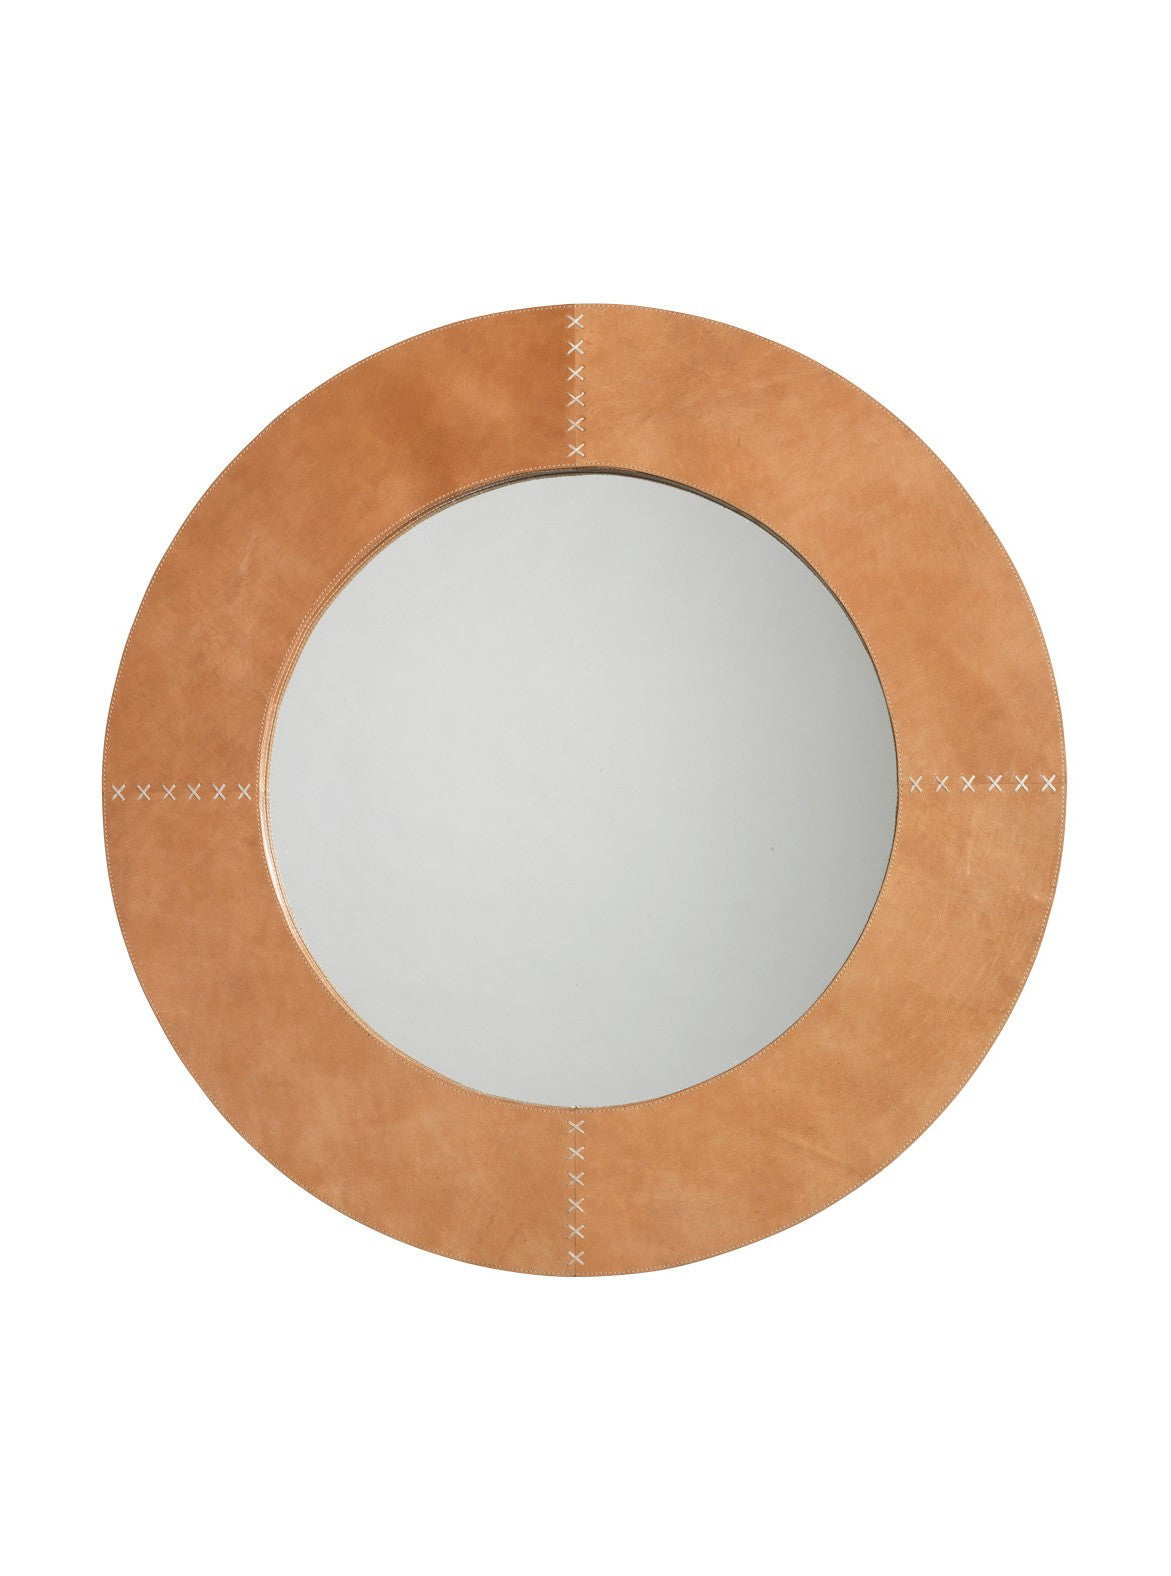 Jamie Young round cross stitch mirror buff 1-1207